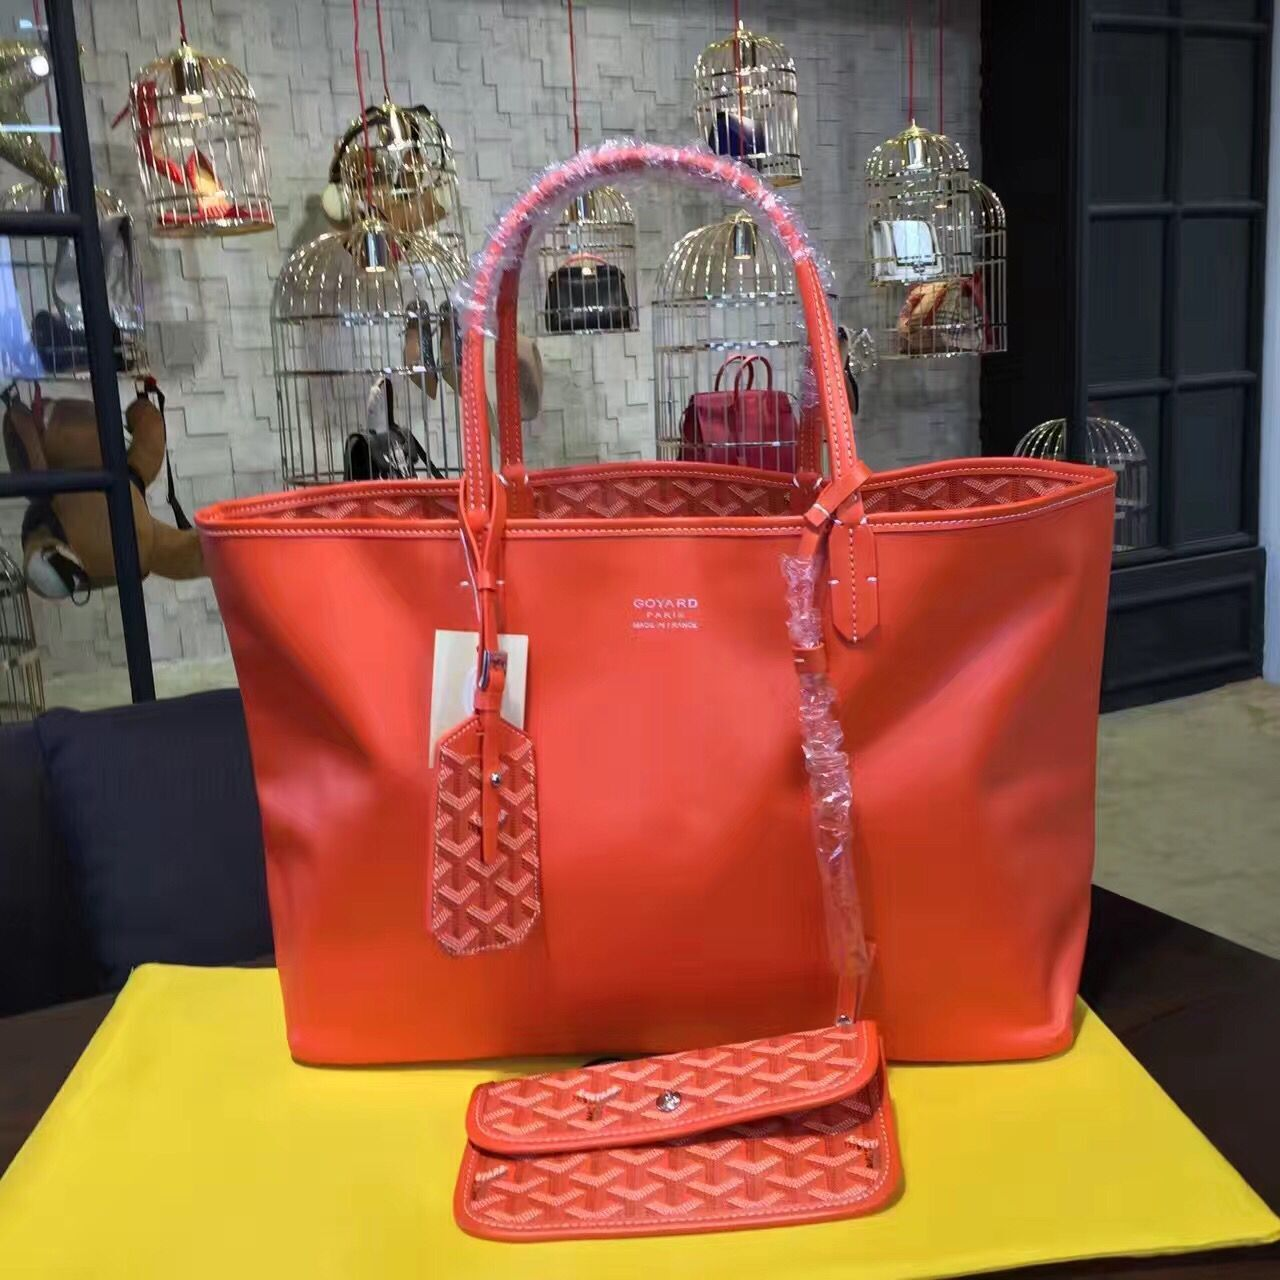 Goyard Y Doodling Calfskin Leather Tote Bag 7901 Red